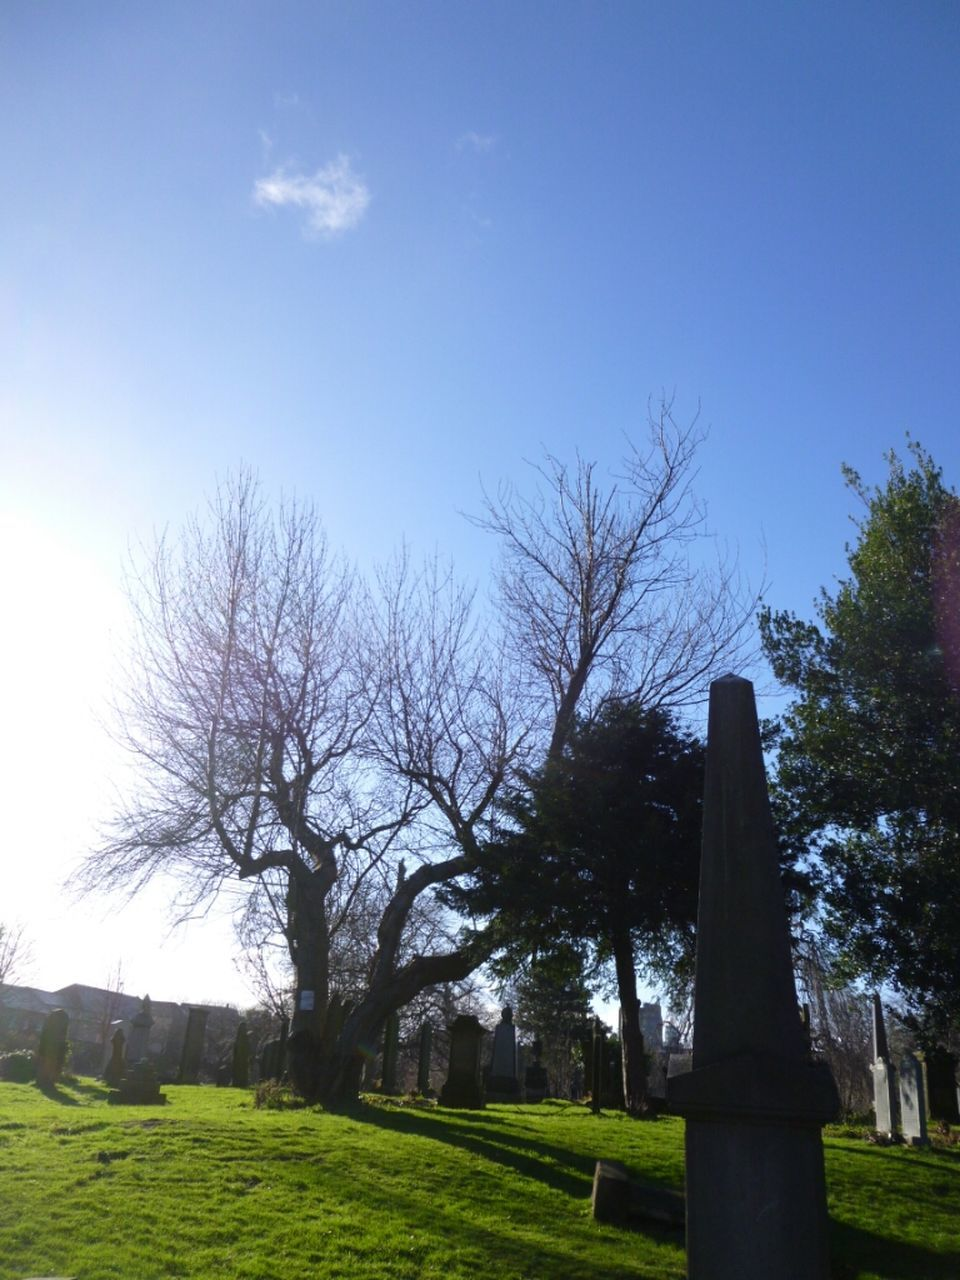 tree, cemetery, tombstone, memorial, grass, tranquility, tranquil scene, day, nature, no people, gravestone, sky, graveyard, outdoors, landscape, growth, beauty in nature, scenics, bare tree, clear sky